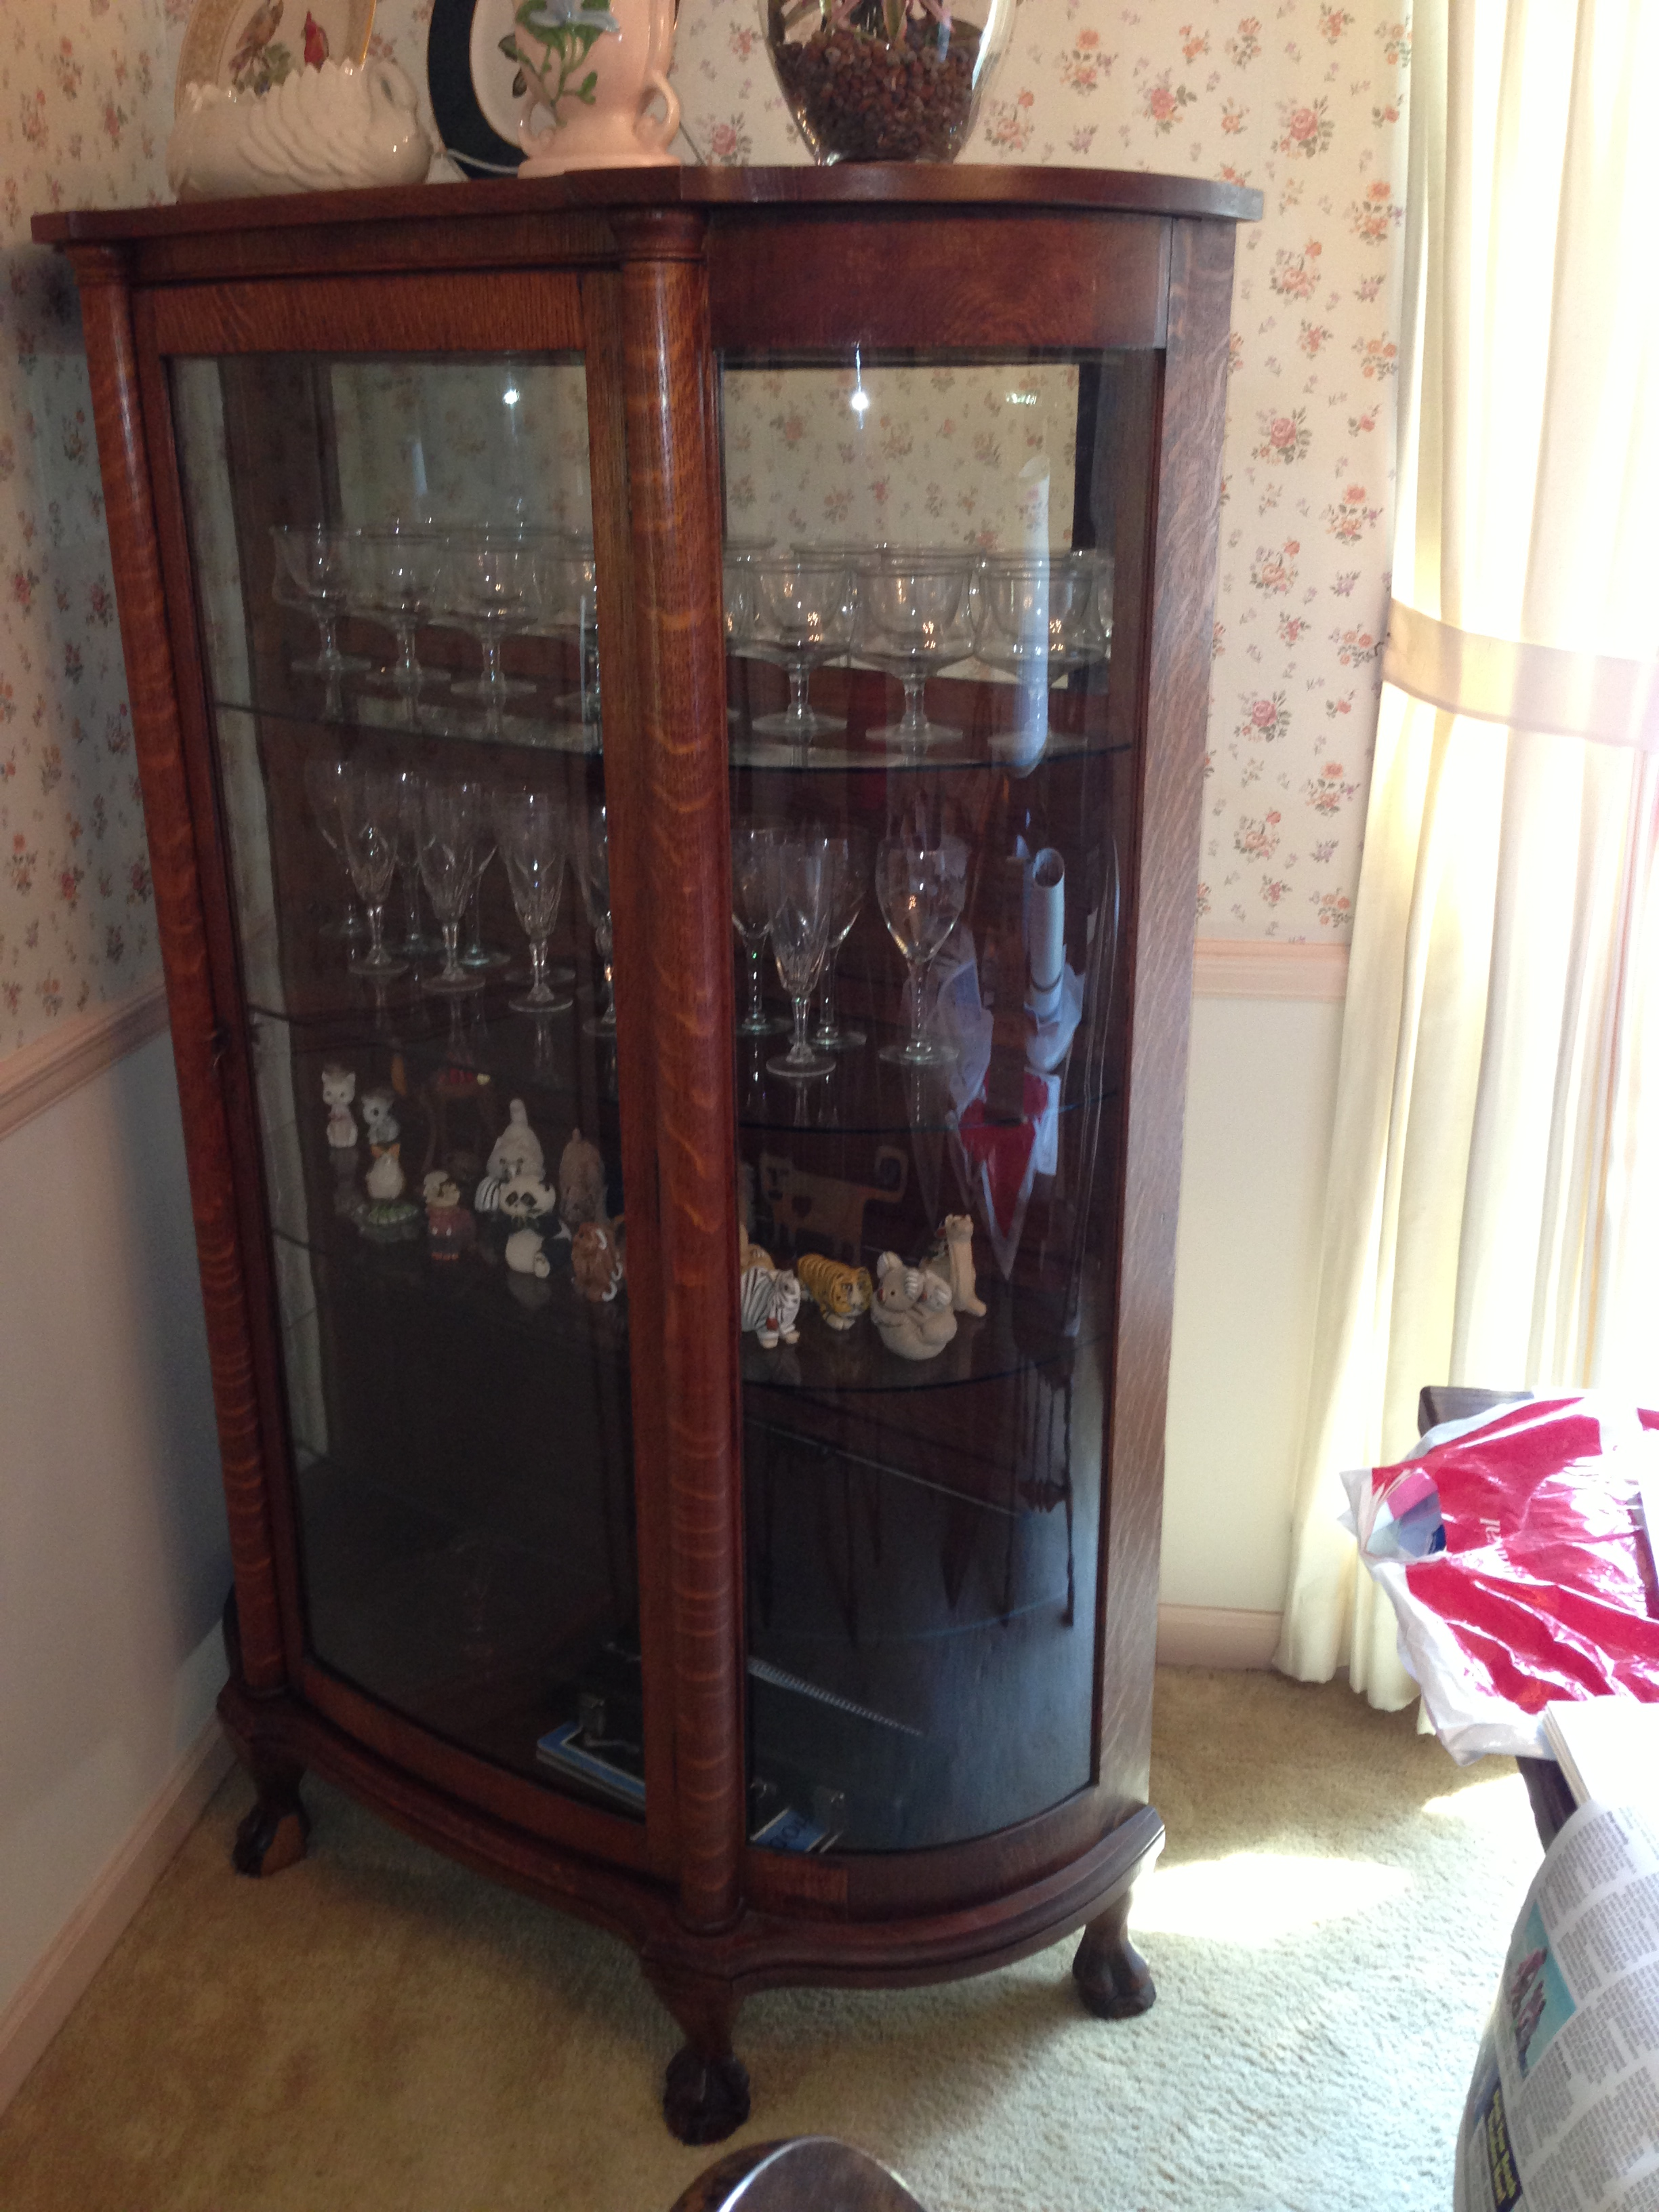 This is a beautiful antique oak early 1900s quality American made china  cabinet. It measures 62